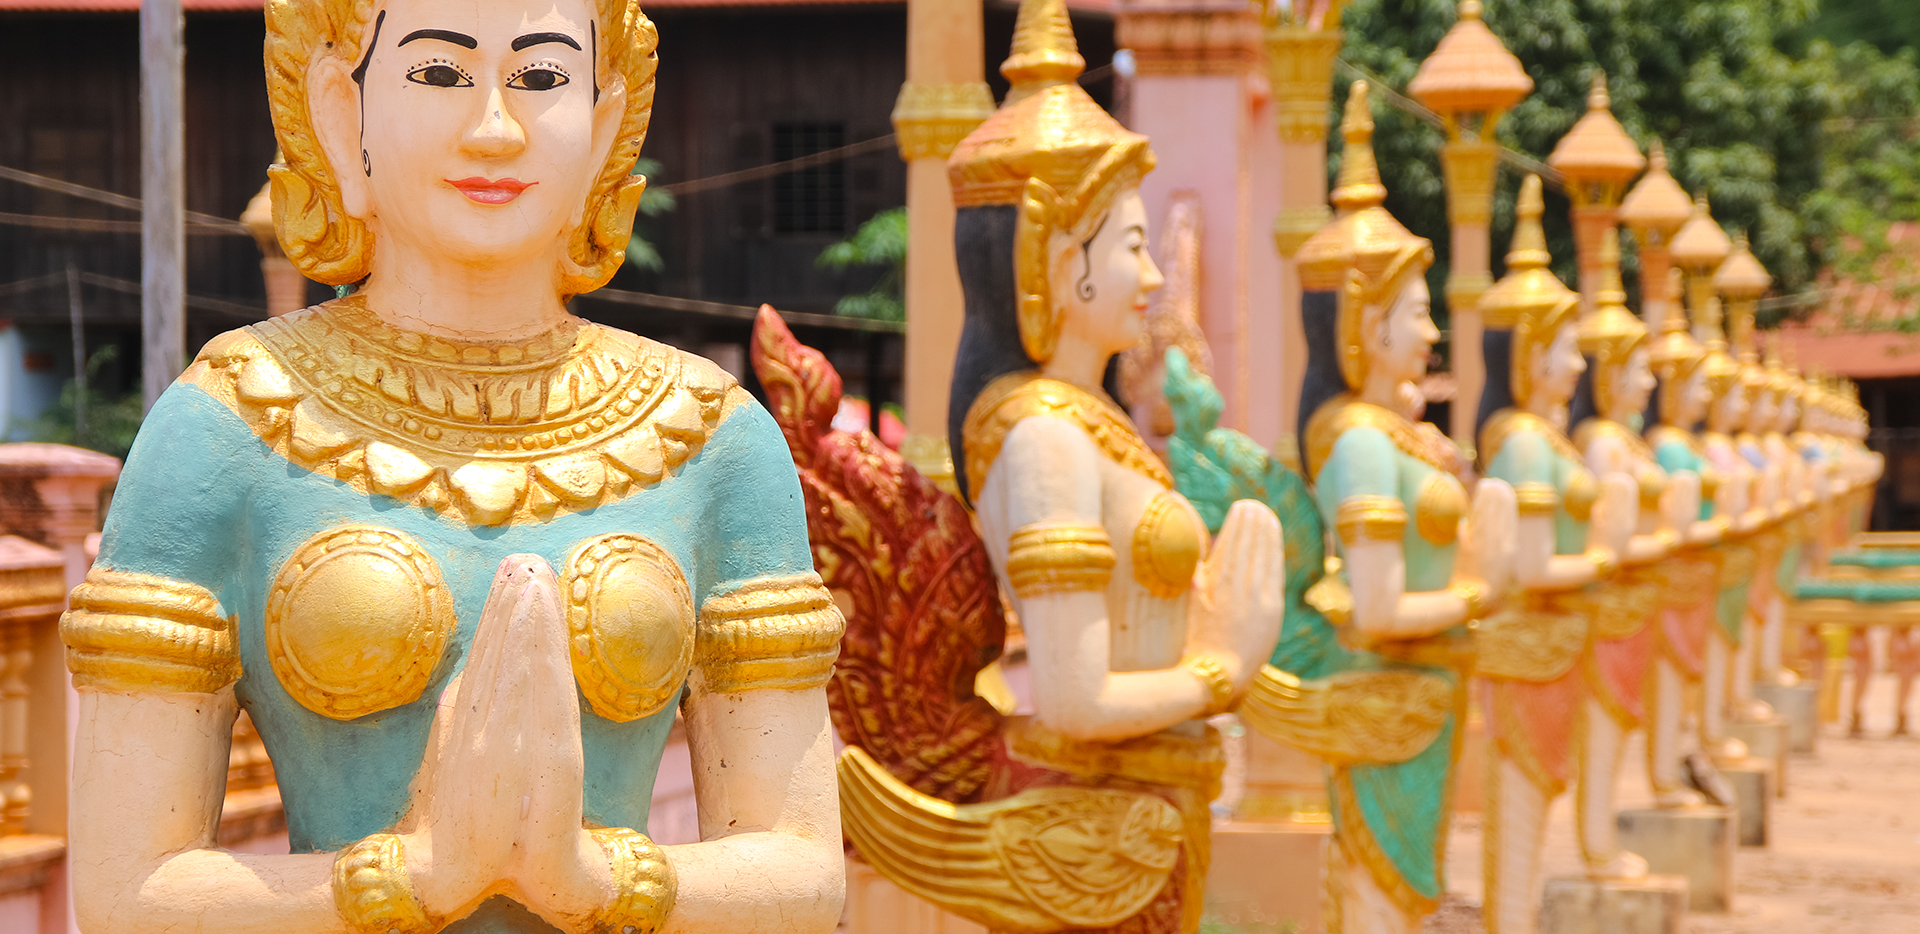 Temple Kinnara Chicken Lady Statues In A Row